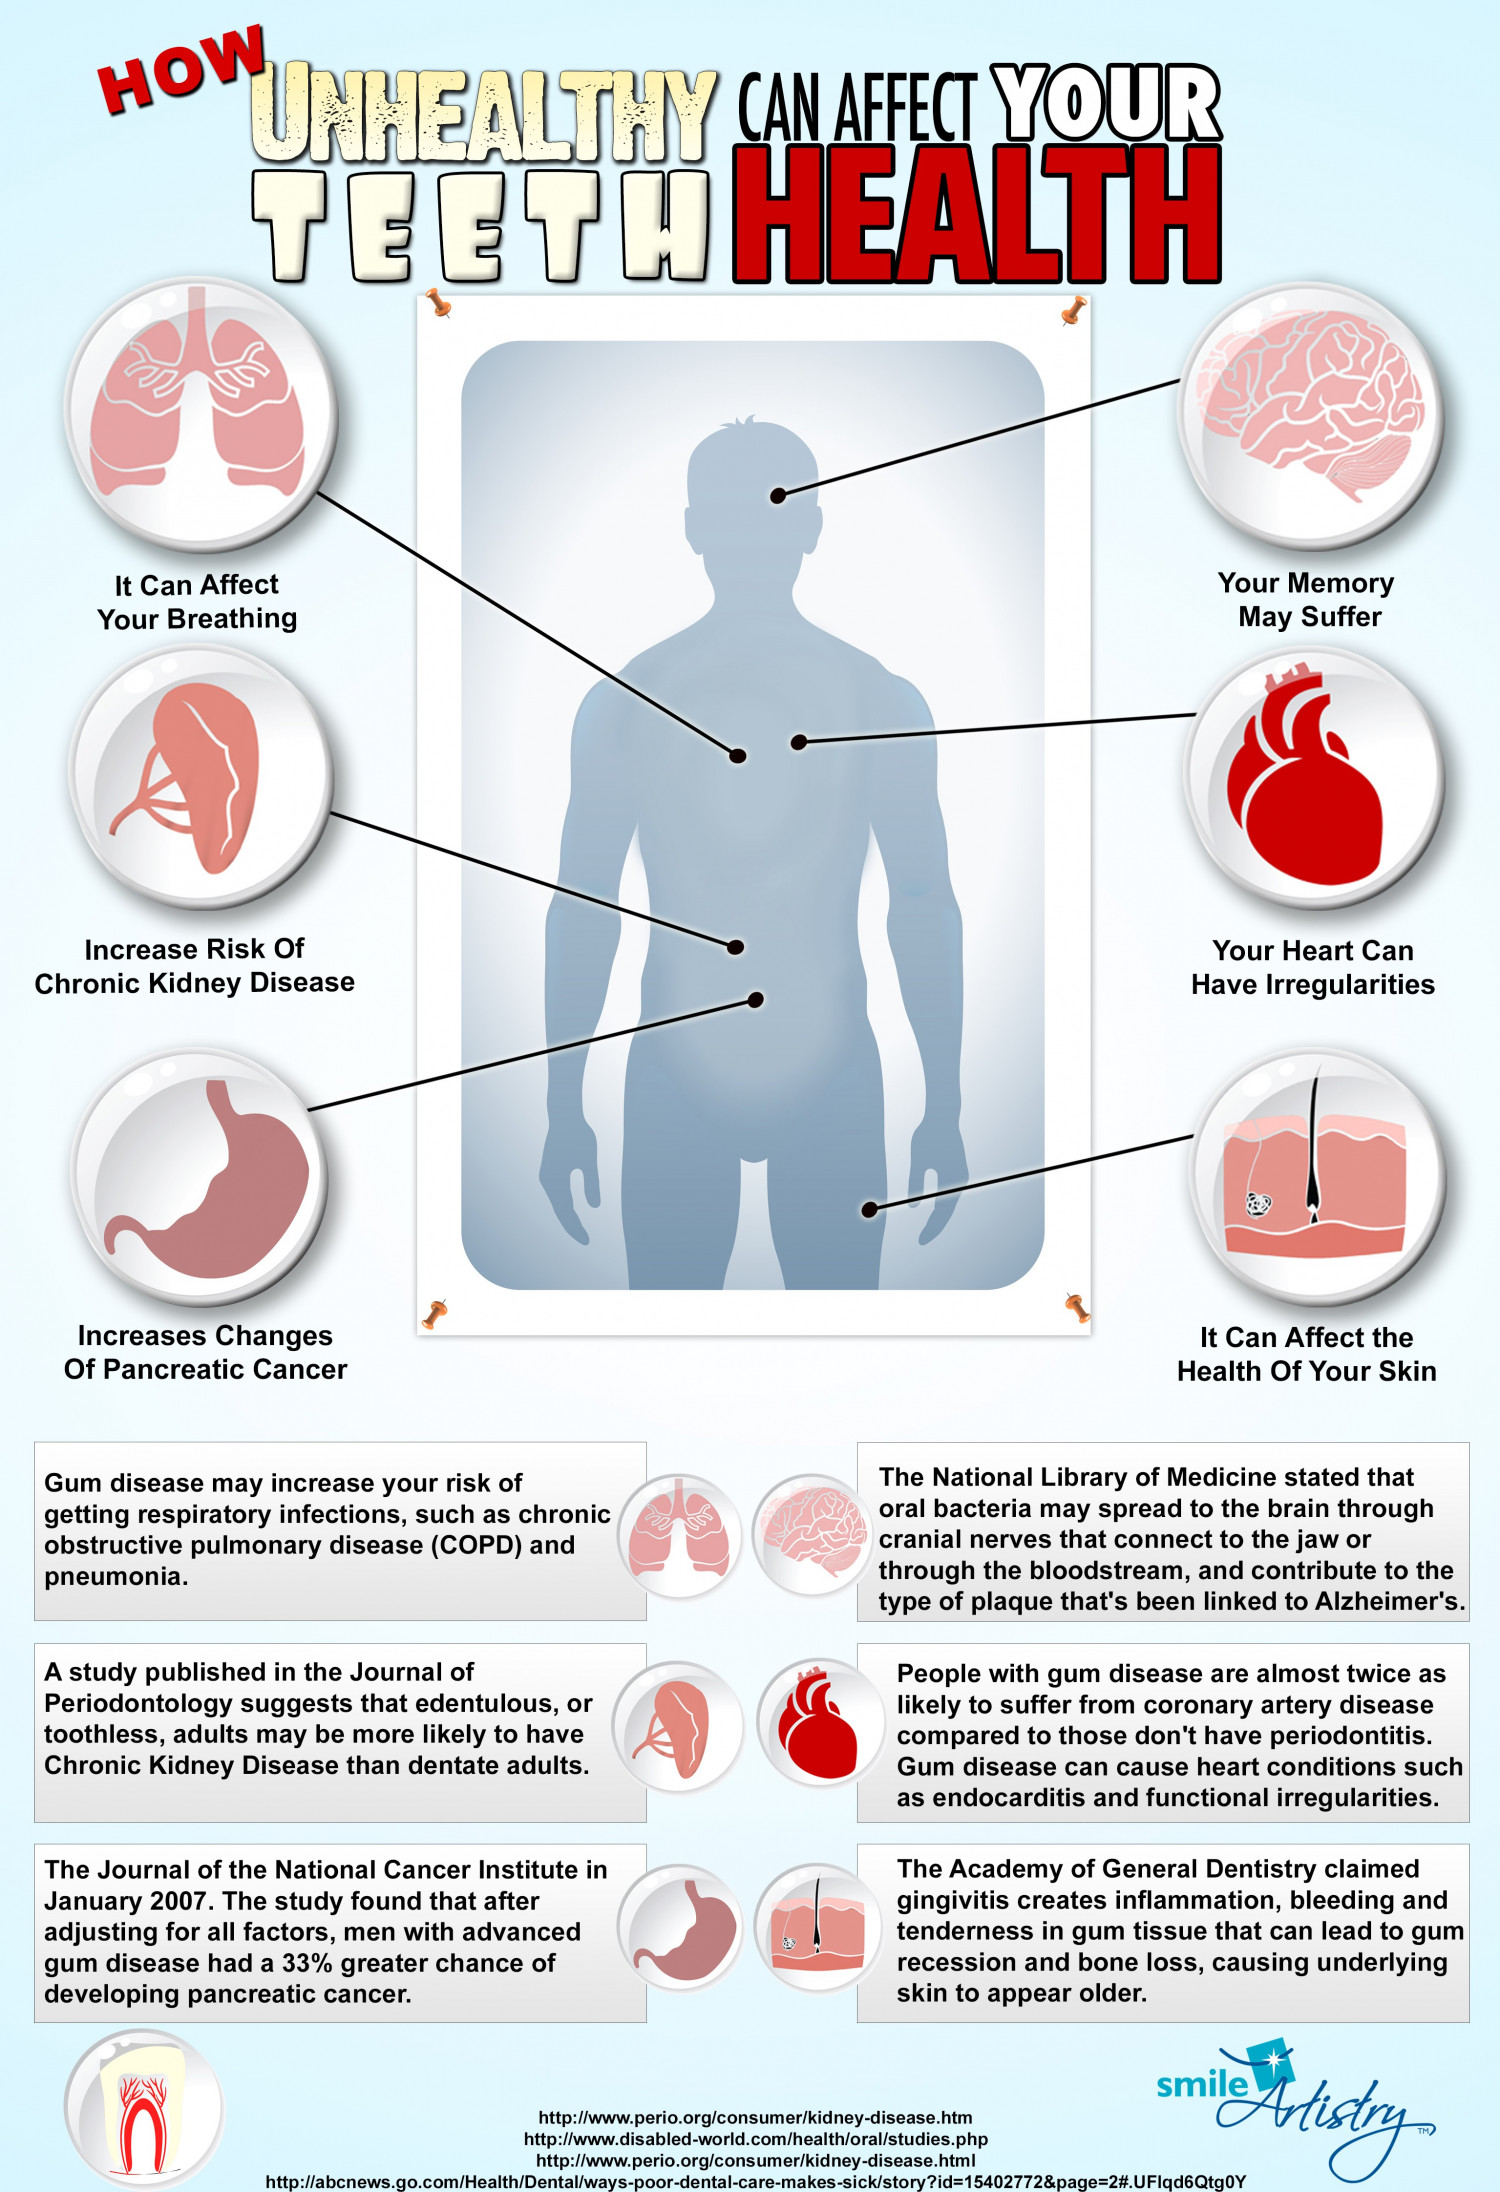 How unhealthy teeth affects overall health Infographic